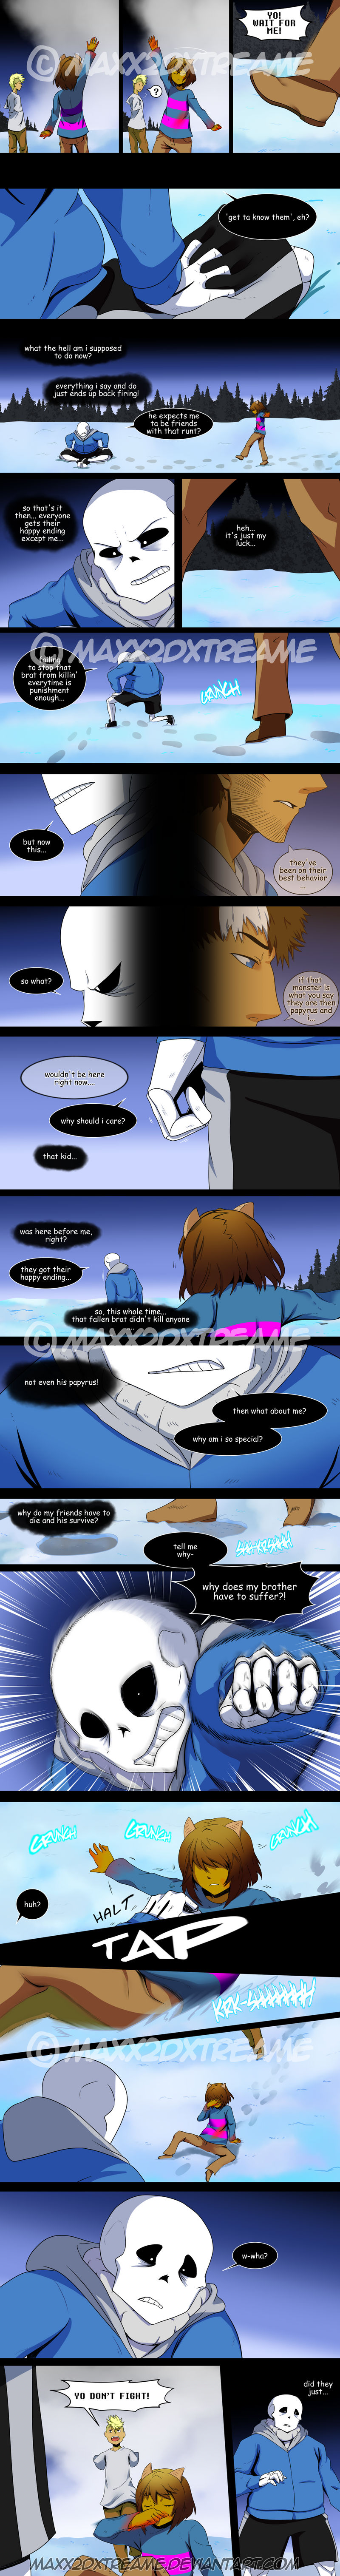 [Undertale] Detour pg 33 by Maxx2DXtreame